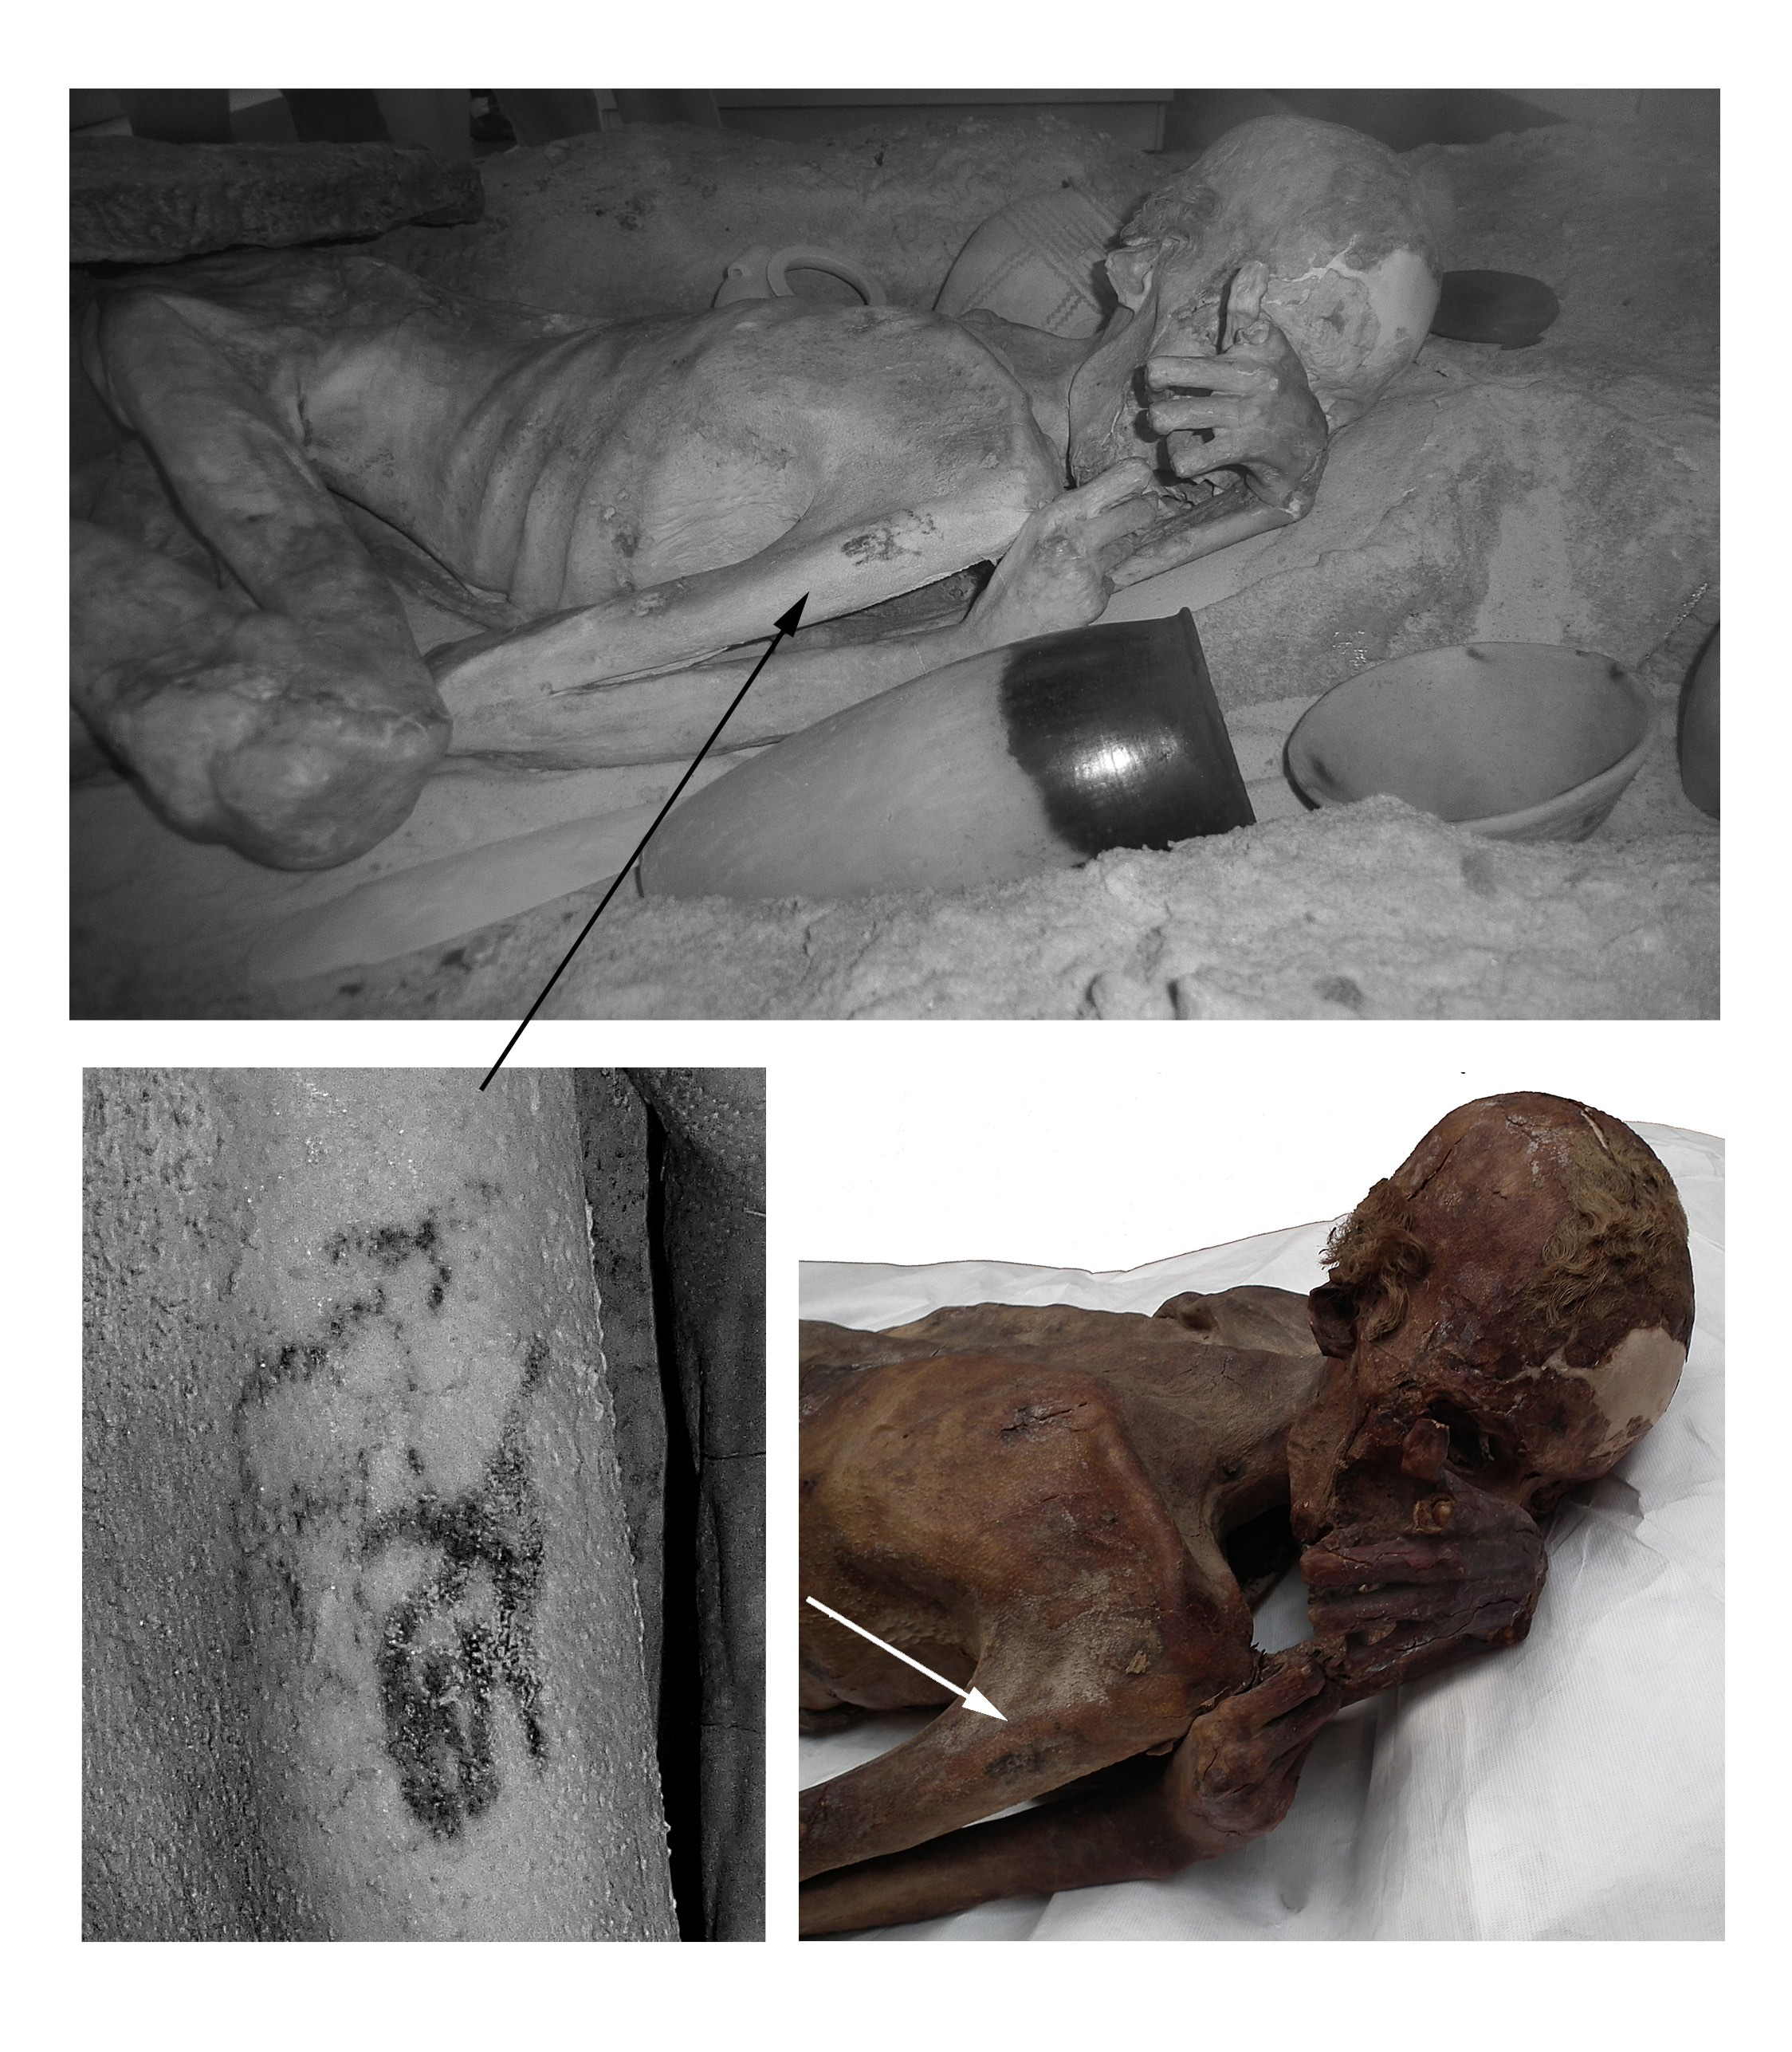 <em>Infrared images of the mummy with details of the tattoos observed on her upper right arm (upper left)and shoulder (upper right)</em>